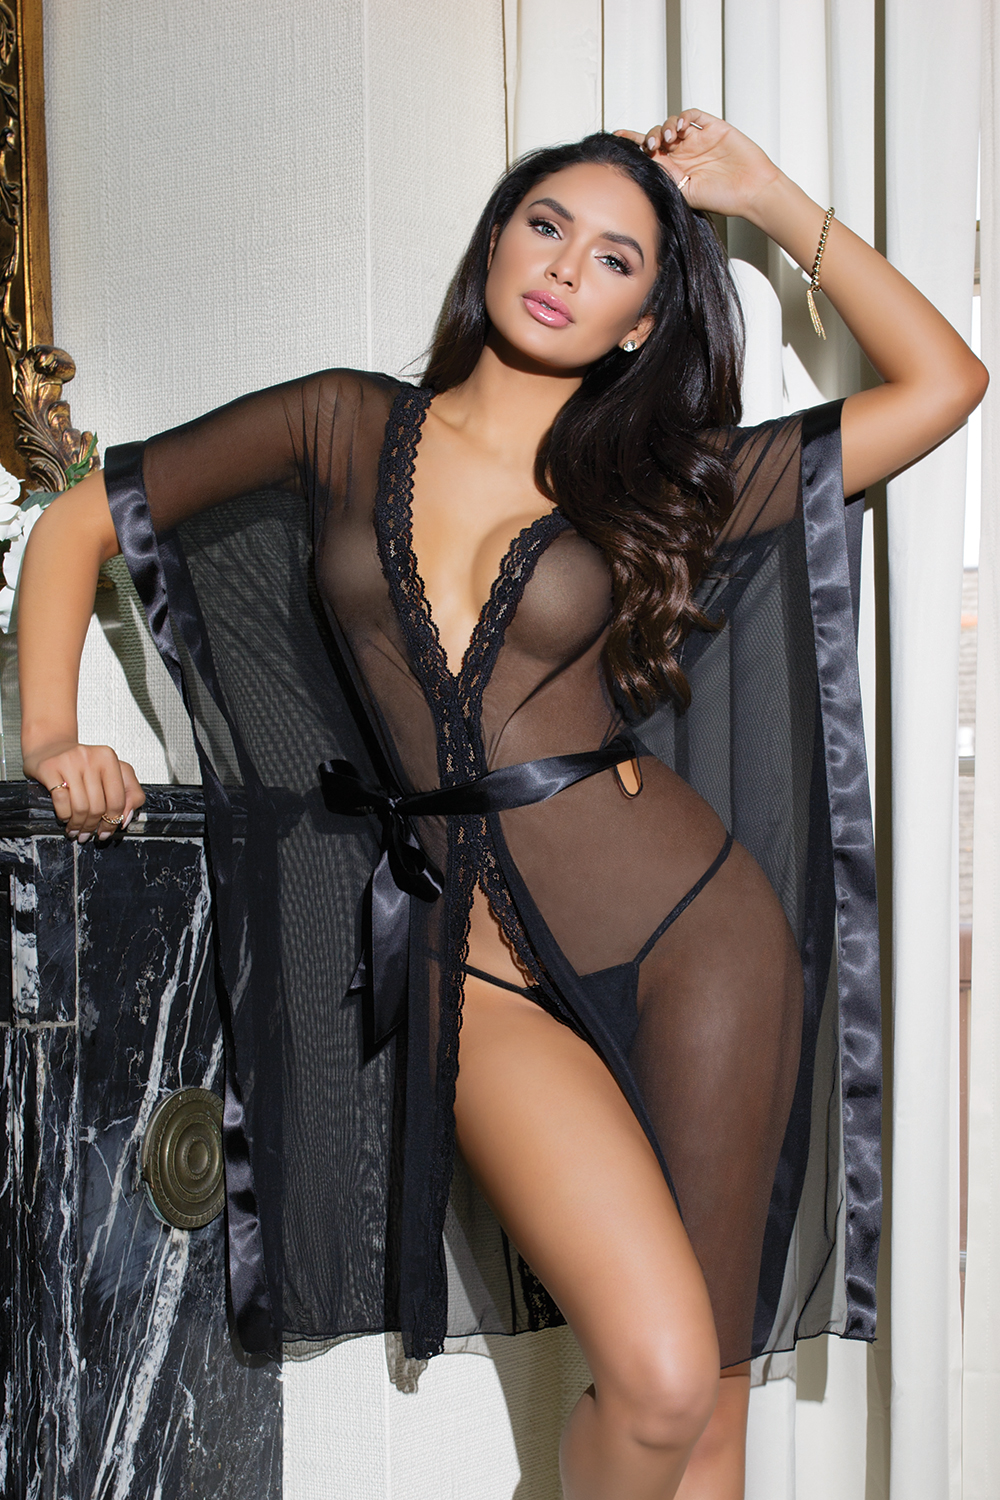 98f73b5ad40 US  6 - Black Lace Two-Piece Lingerie 27433 - www.global-lover.com